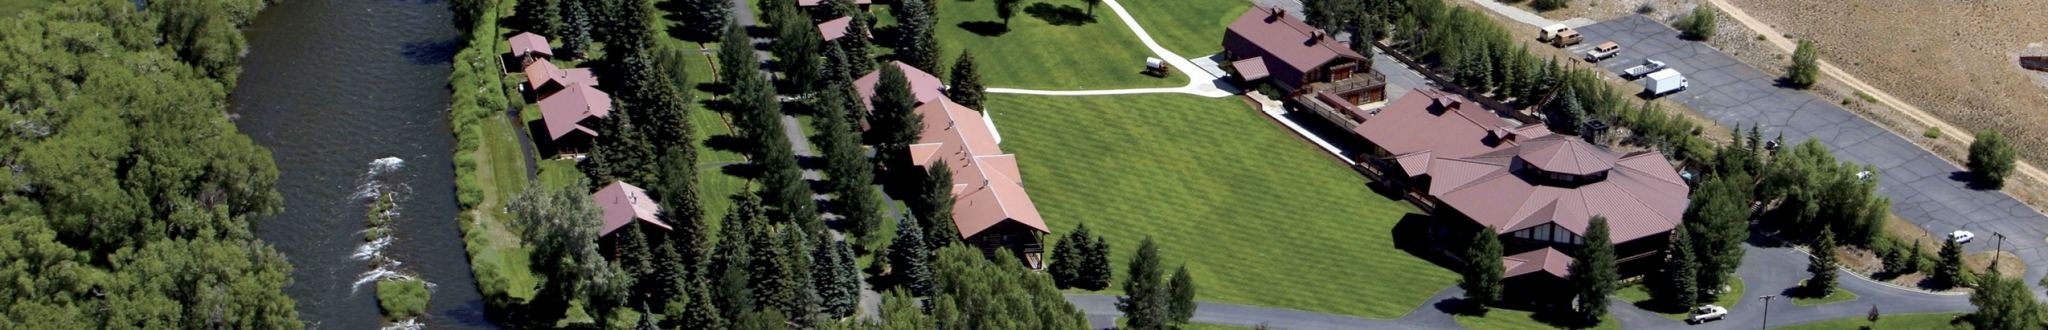 Camp Gunnison—The Way Household Ranch aerial view